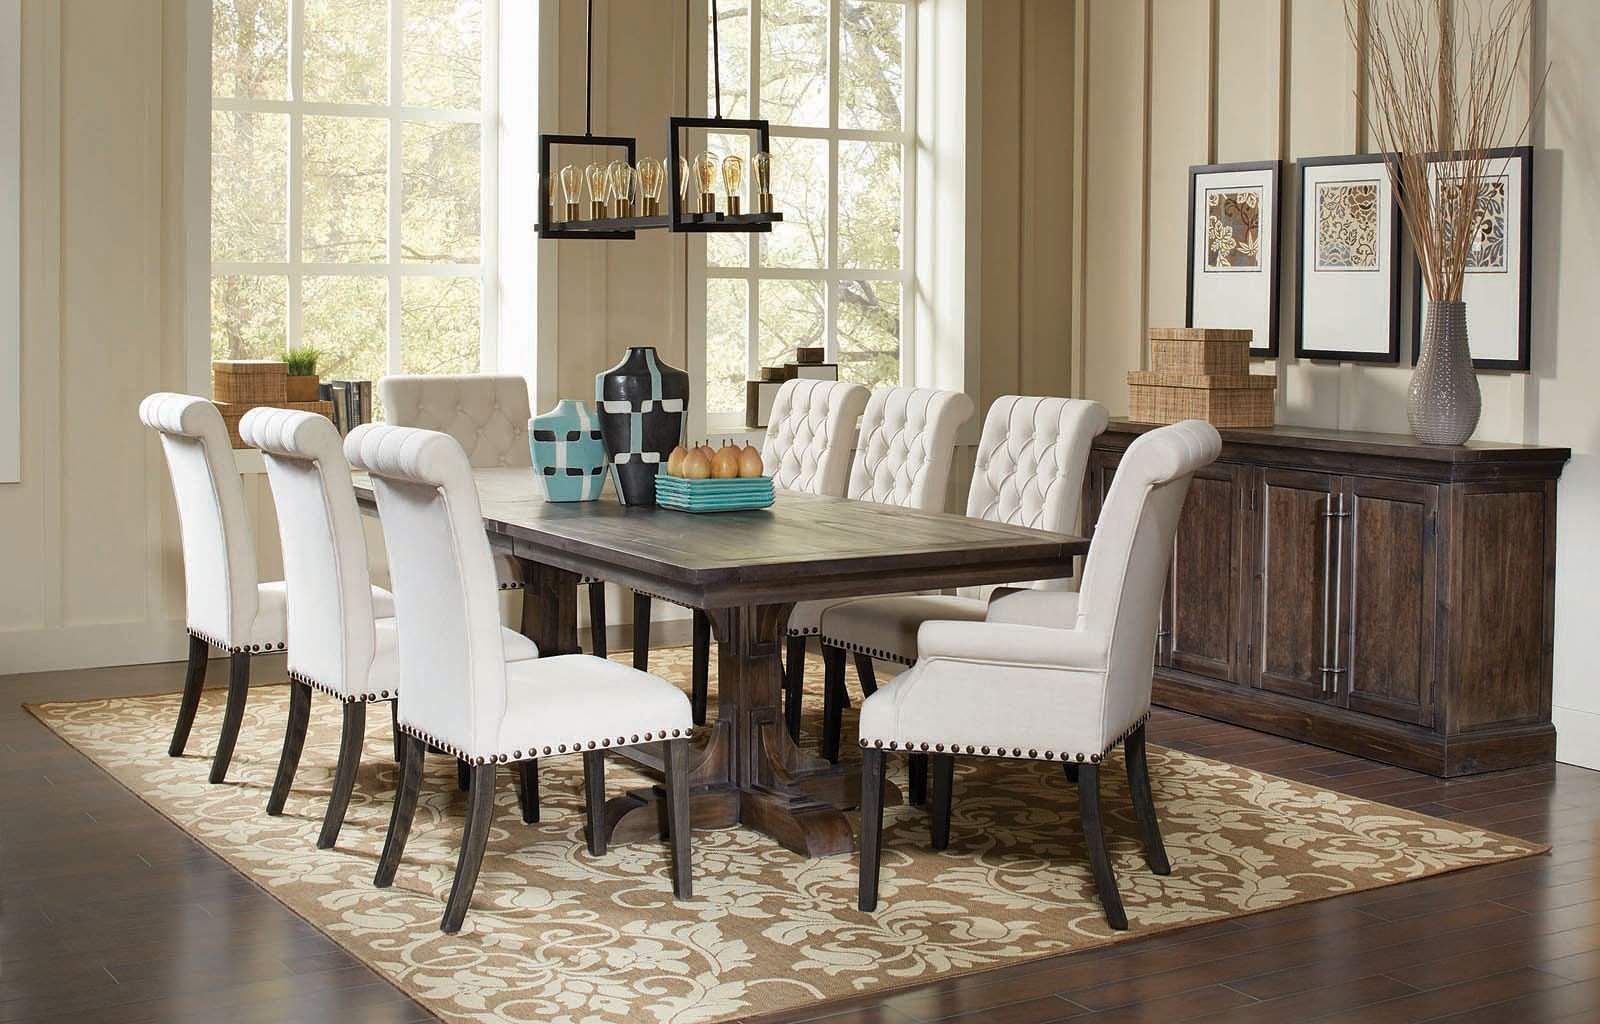 harden dining room furniture | Weber Dining Room Set W/ Cream Chairs Coaster Furniture ...